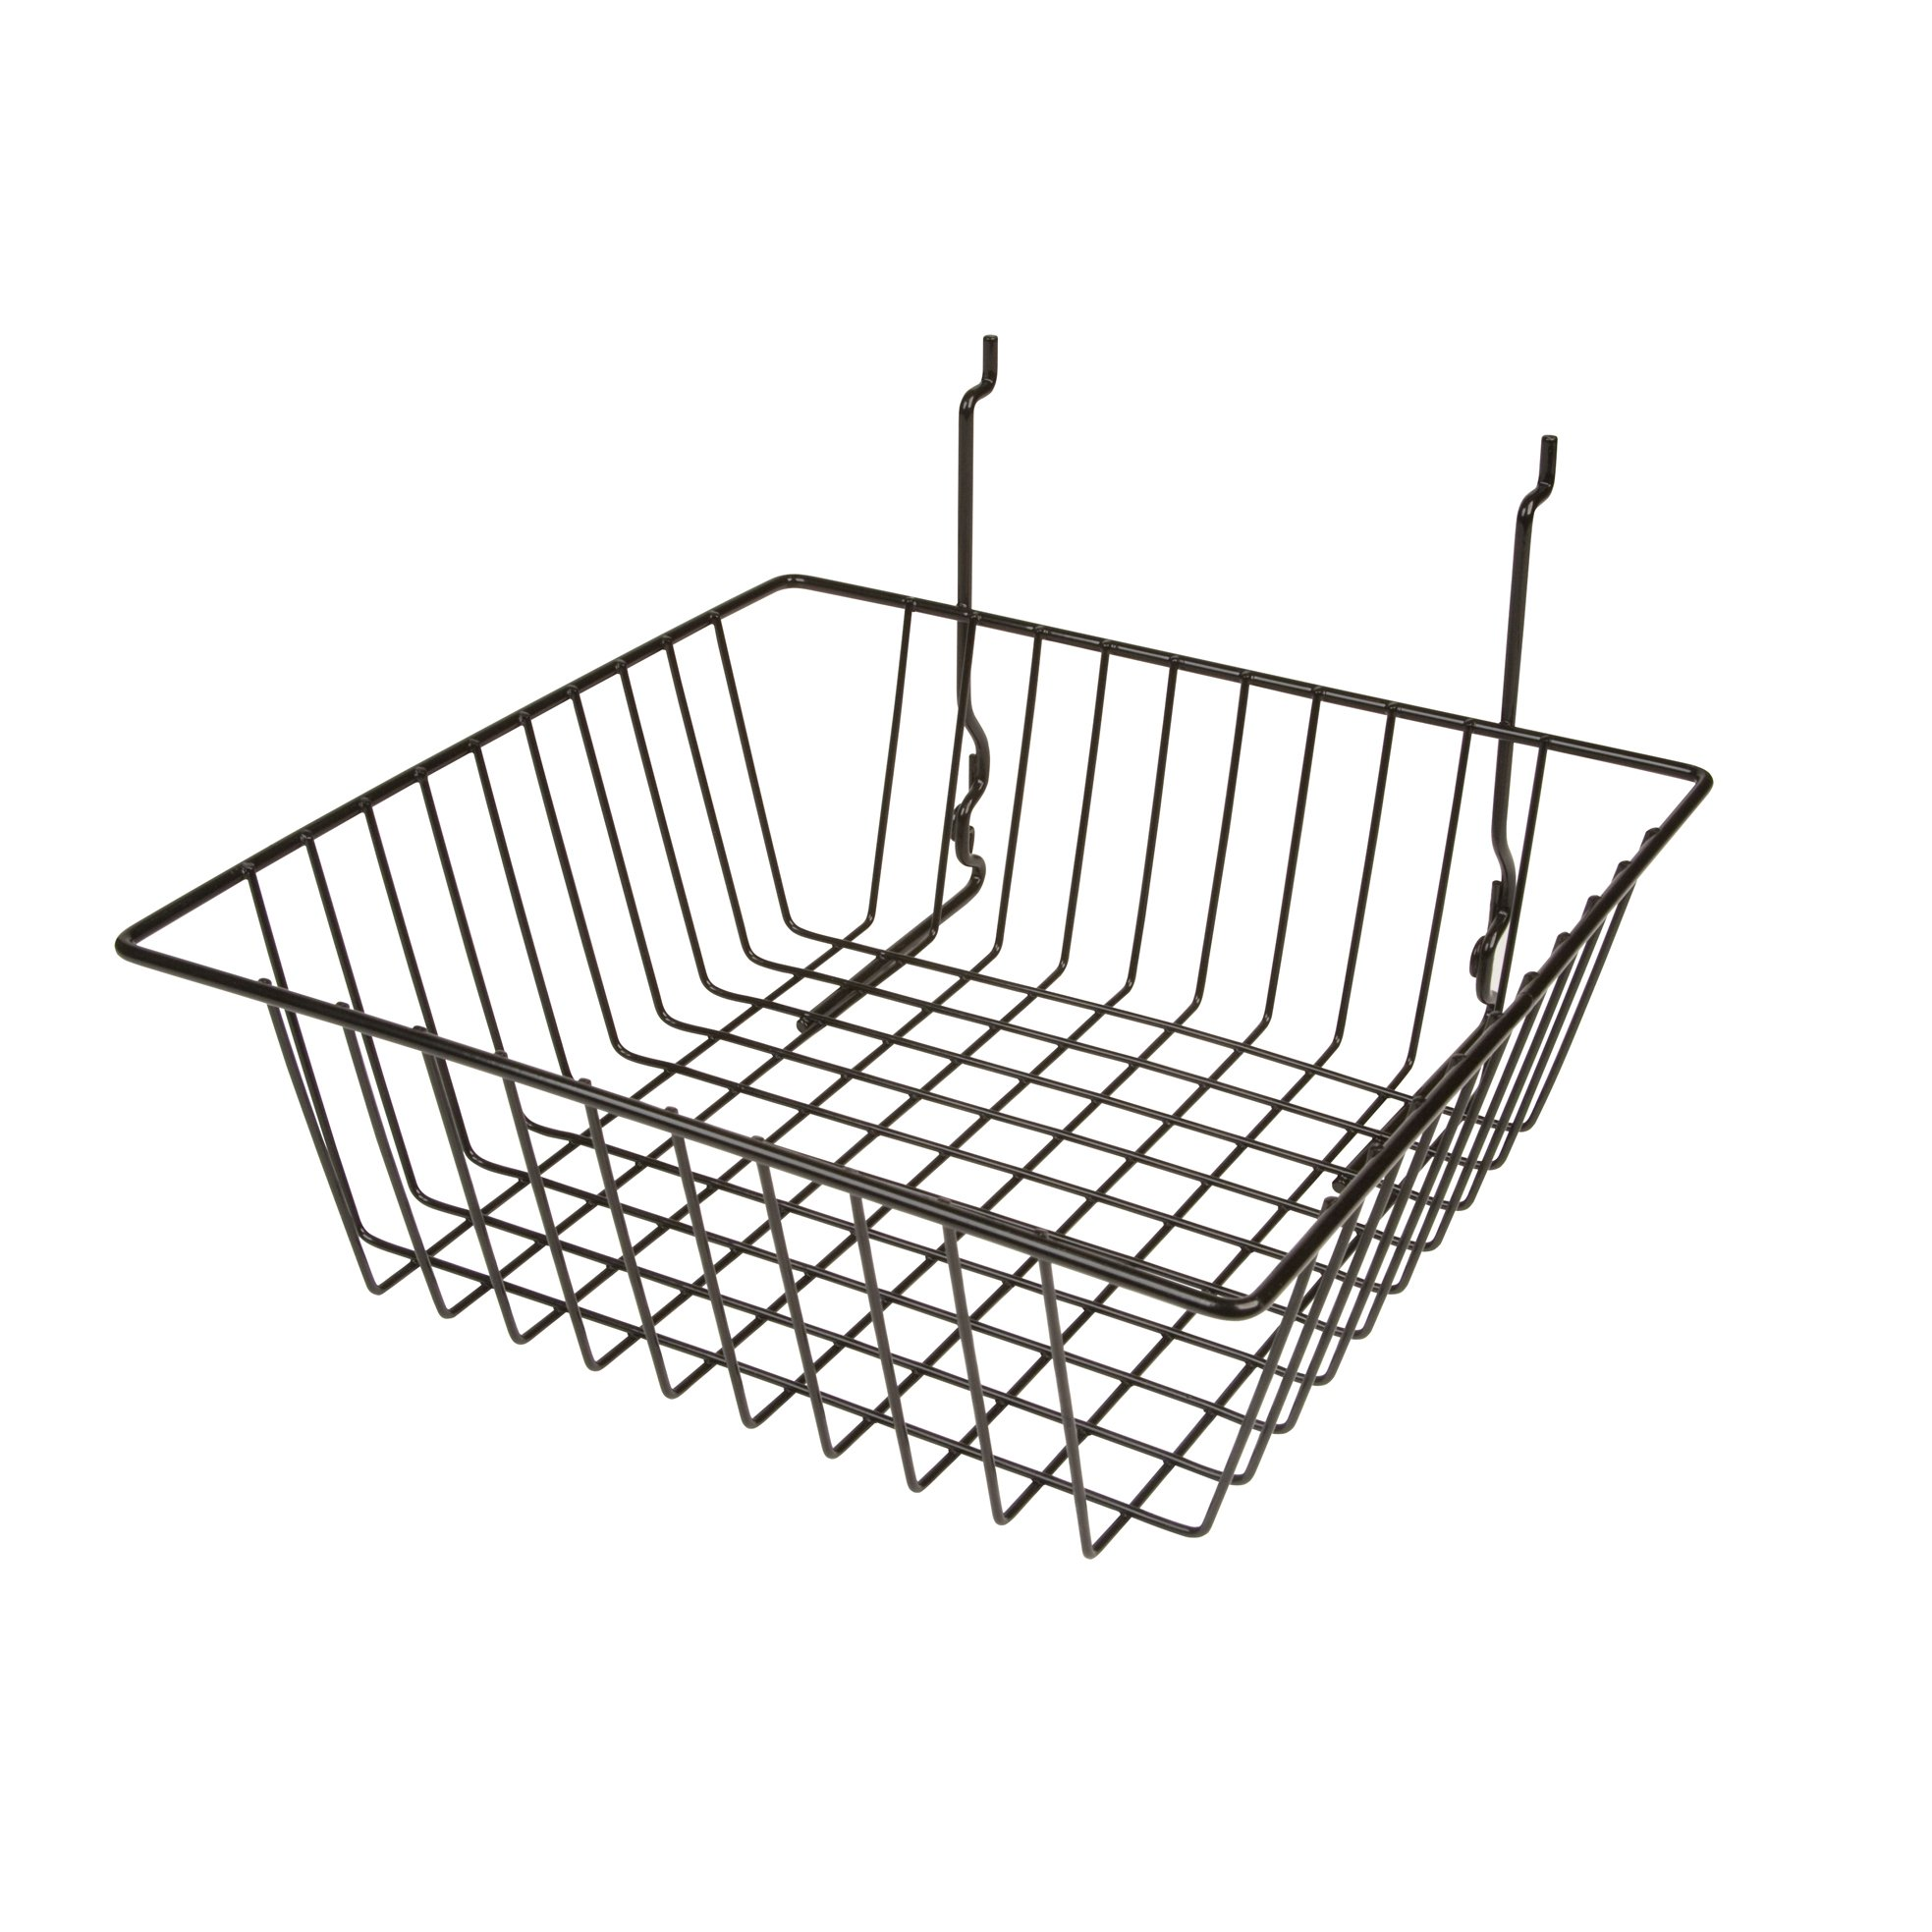 Only Garment Racks #5612BLACK (Pack of 6) Black Wire Baskets for Grid wall, Slat wall or Pegboard - Merchandiser Baskets, Black Wire Basket 12'' L x 12'' D x 4'' H (Set of 6) (Pack of 6)